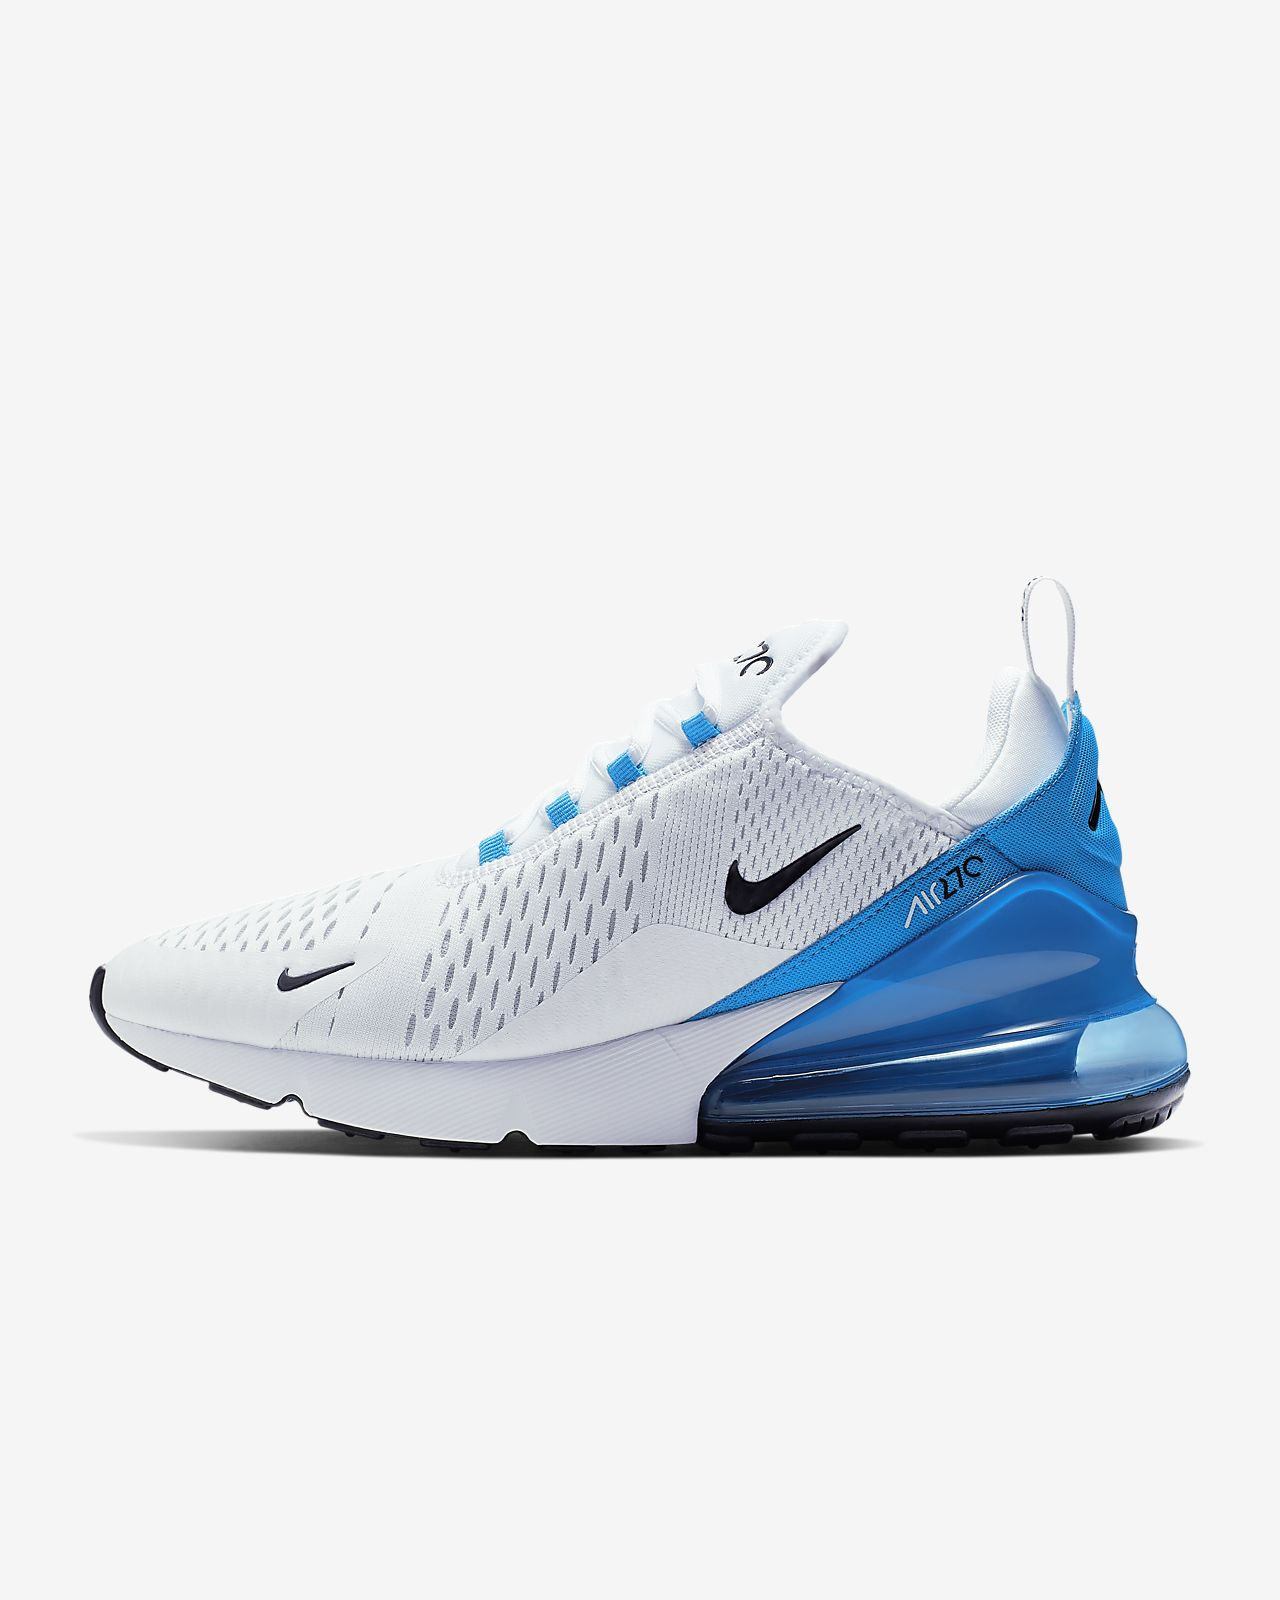 461ea0fc269 Nike Air Max 270 Men s Shoe. Nike.com GB